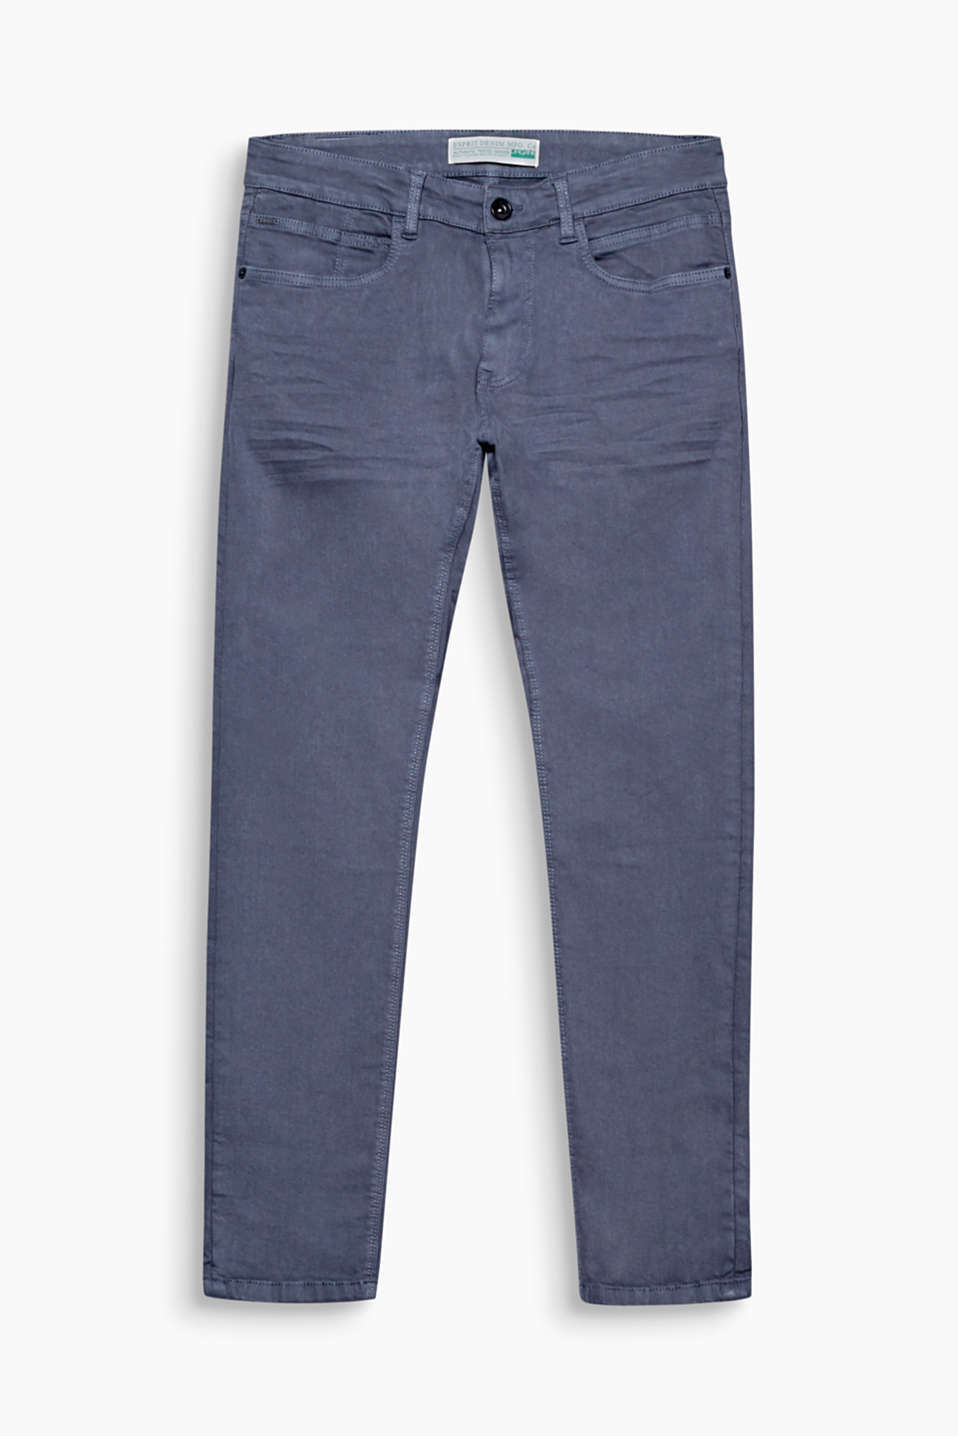 With a clean, deep black garment wash: five-pocket jeans in a stretchy organic cotton blend